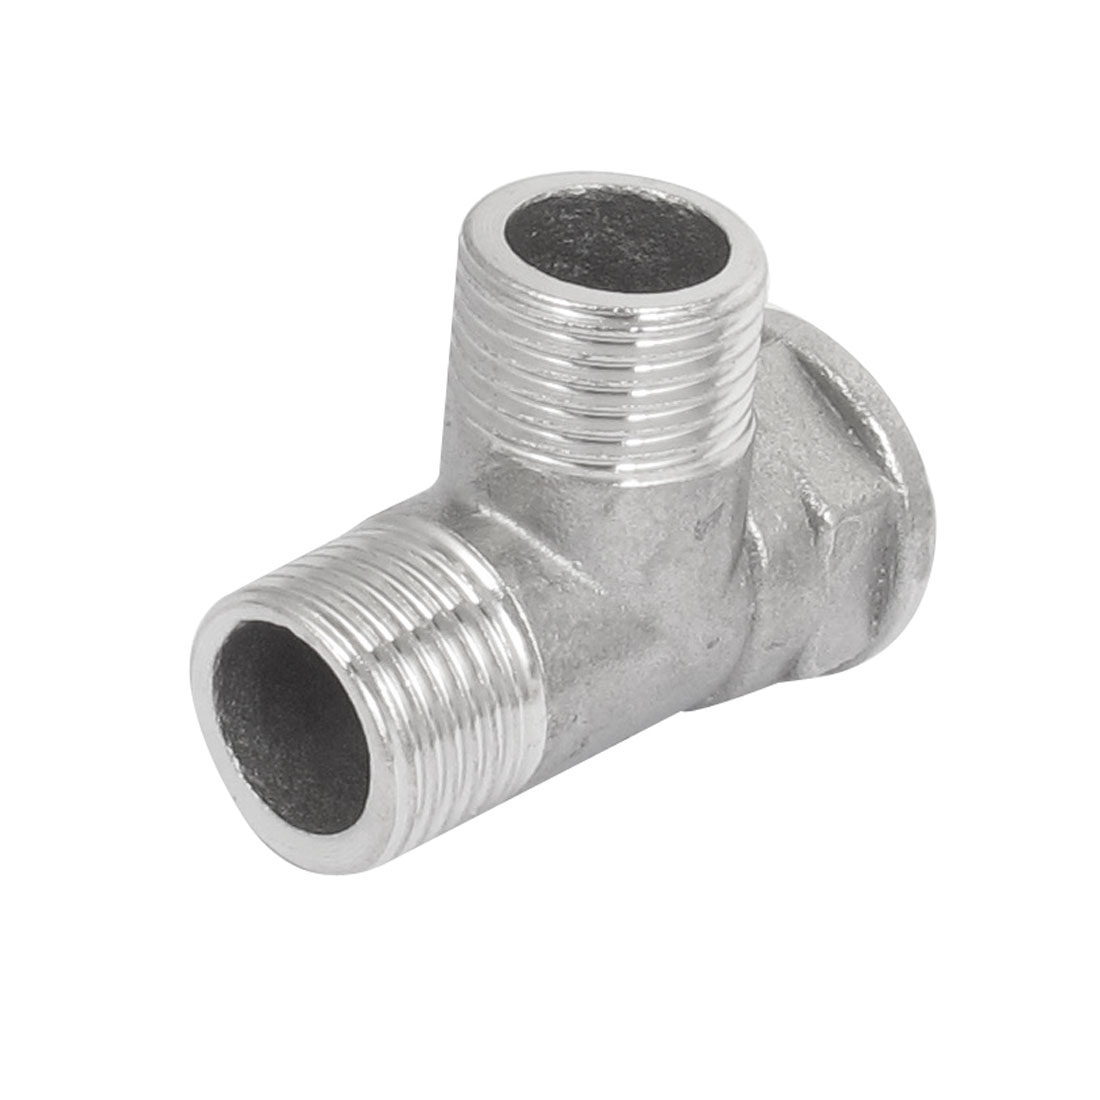 1/2BSP Dual Male to Female Thread Stainless Steel Pipe Fitting Connector - image 1 of 2